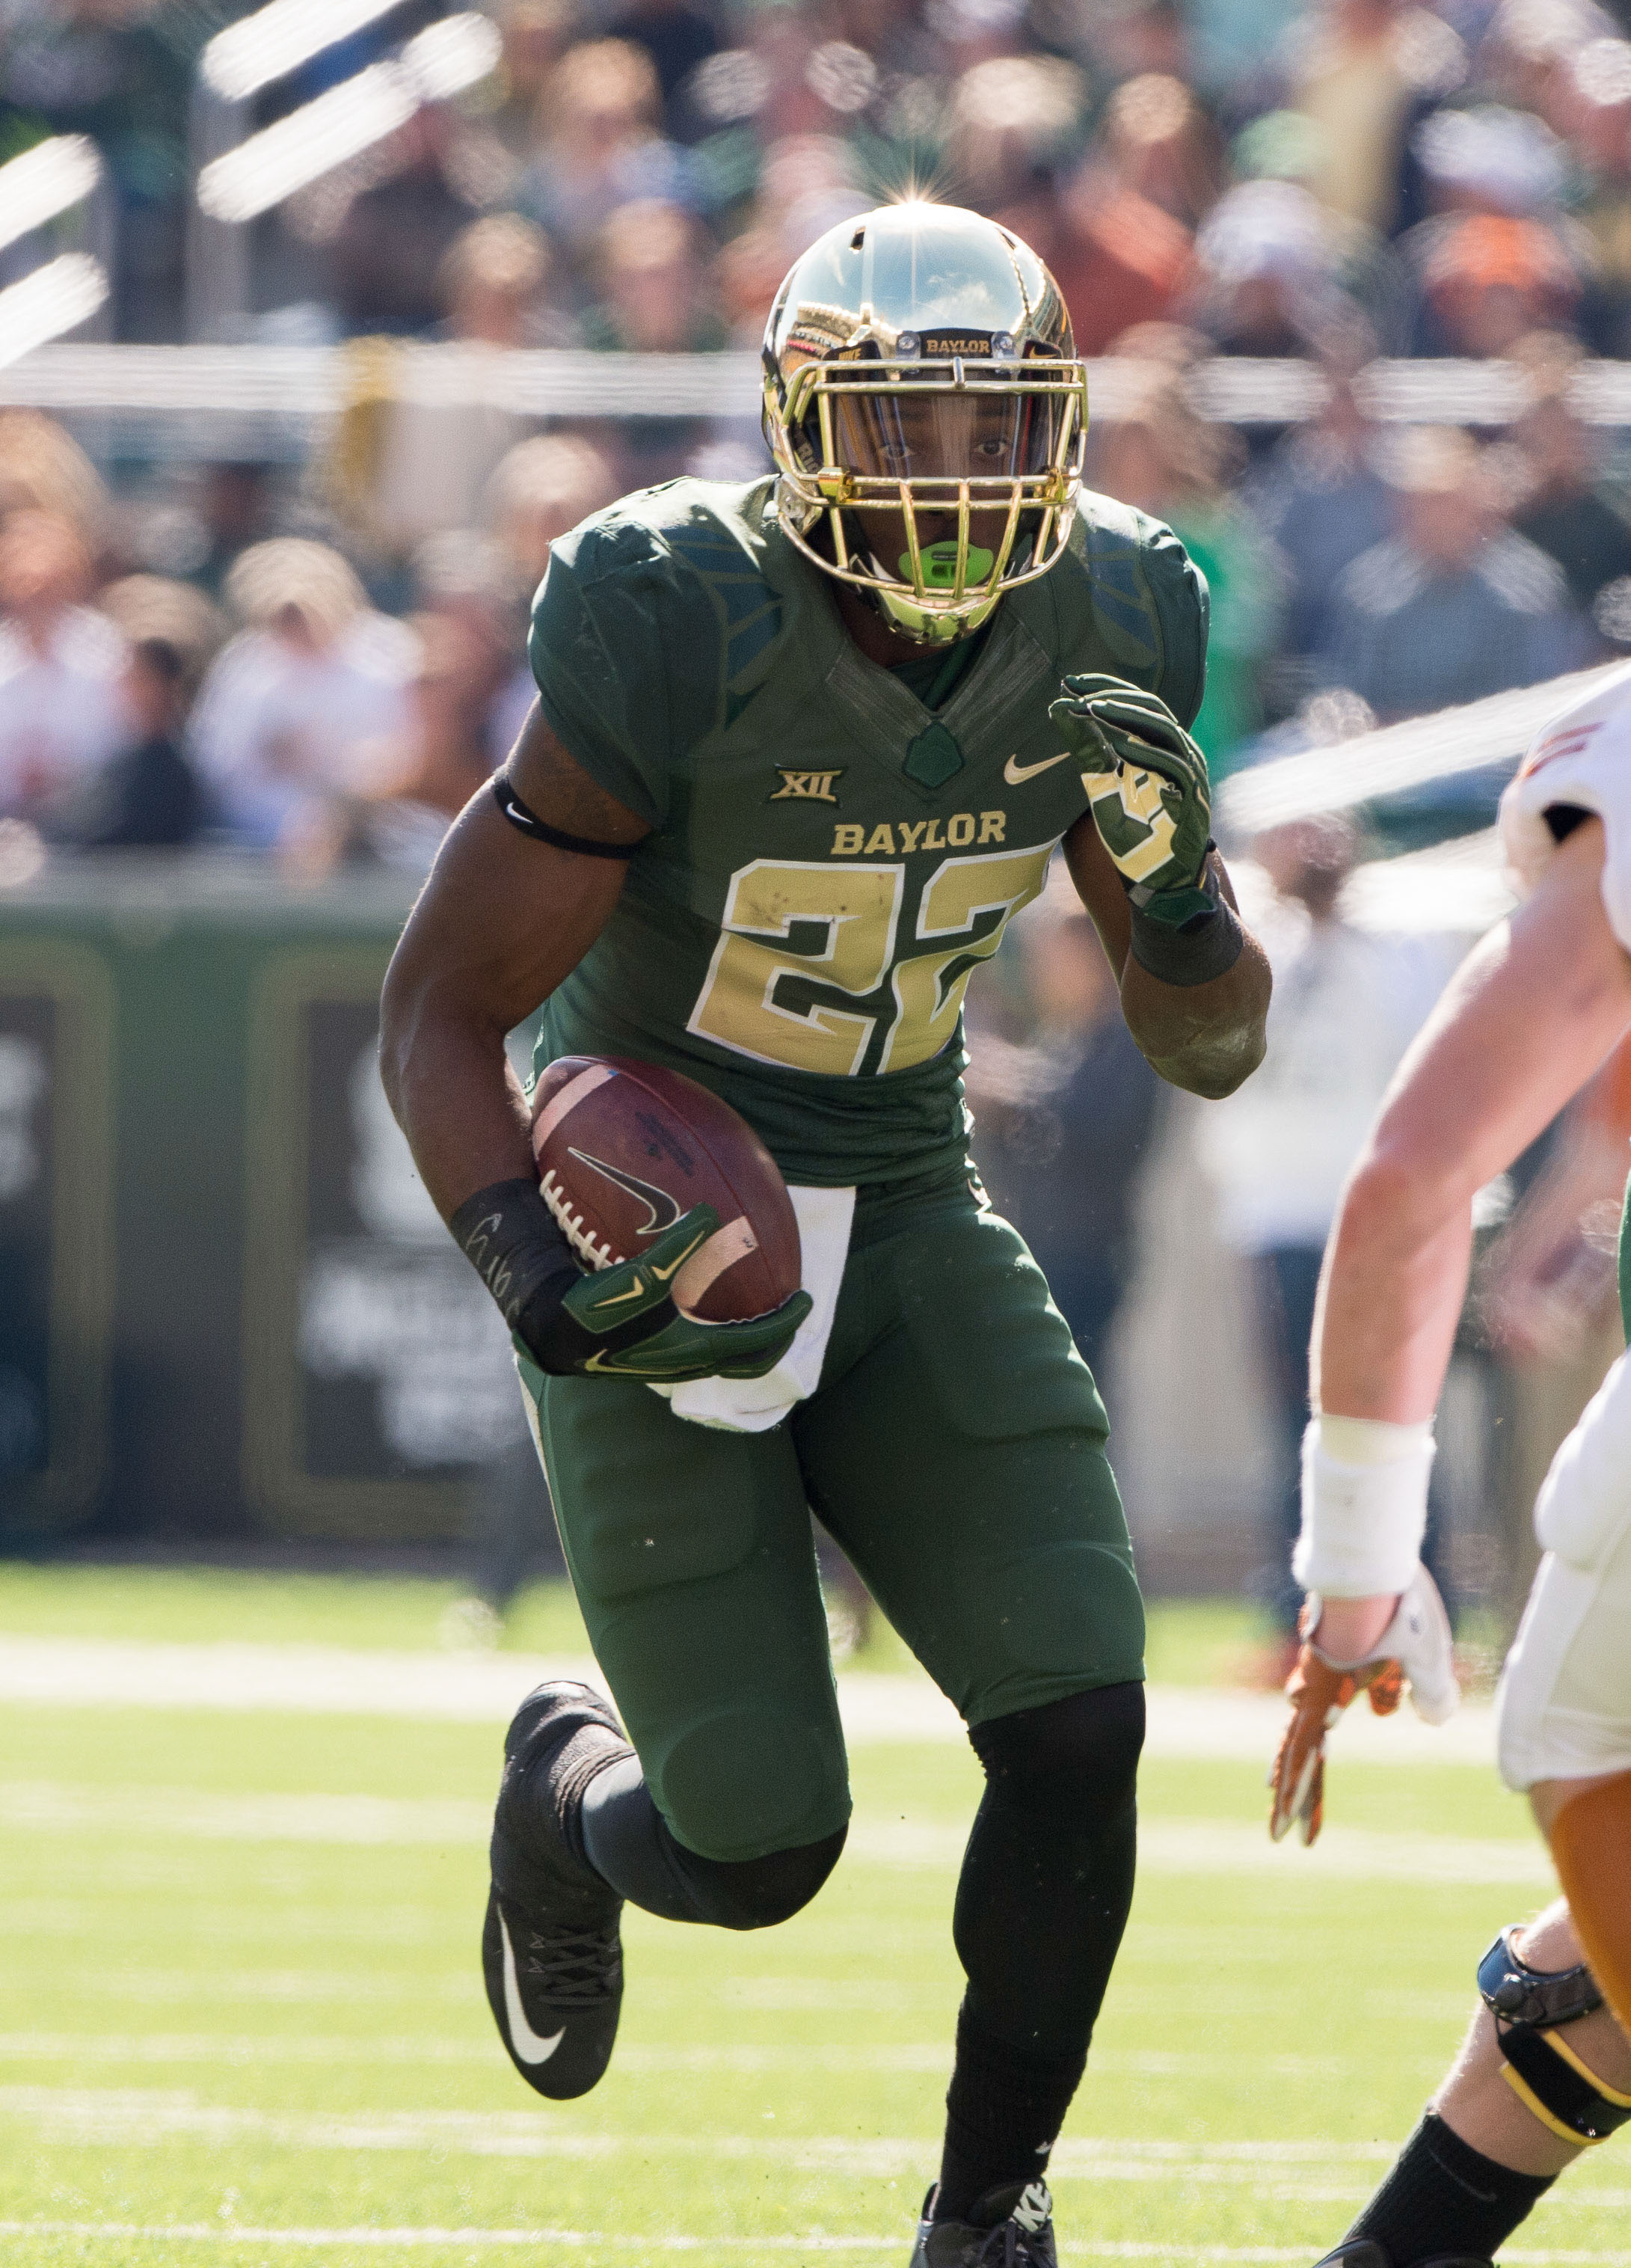 Our Daily Bears Archives - Baylor Football Recruiting - Page 3